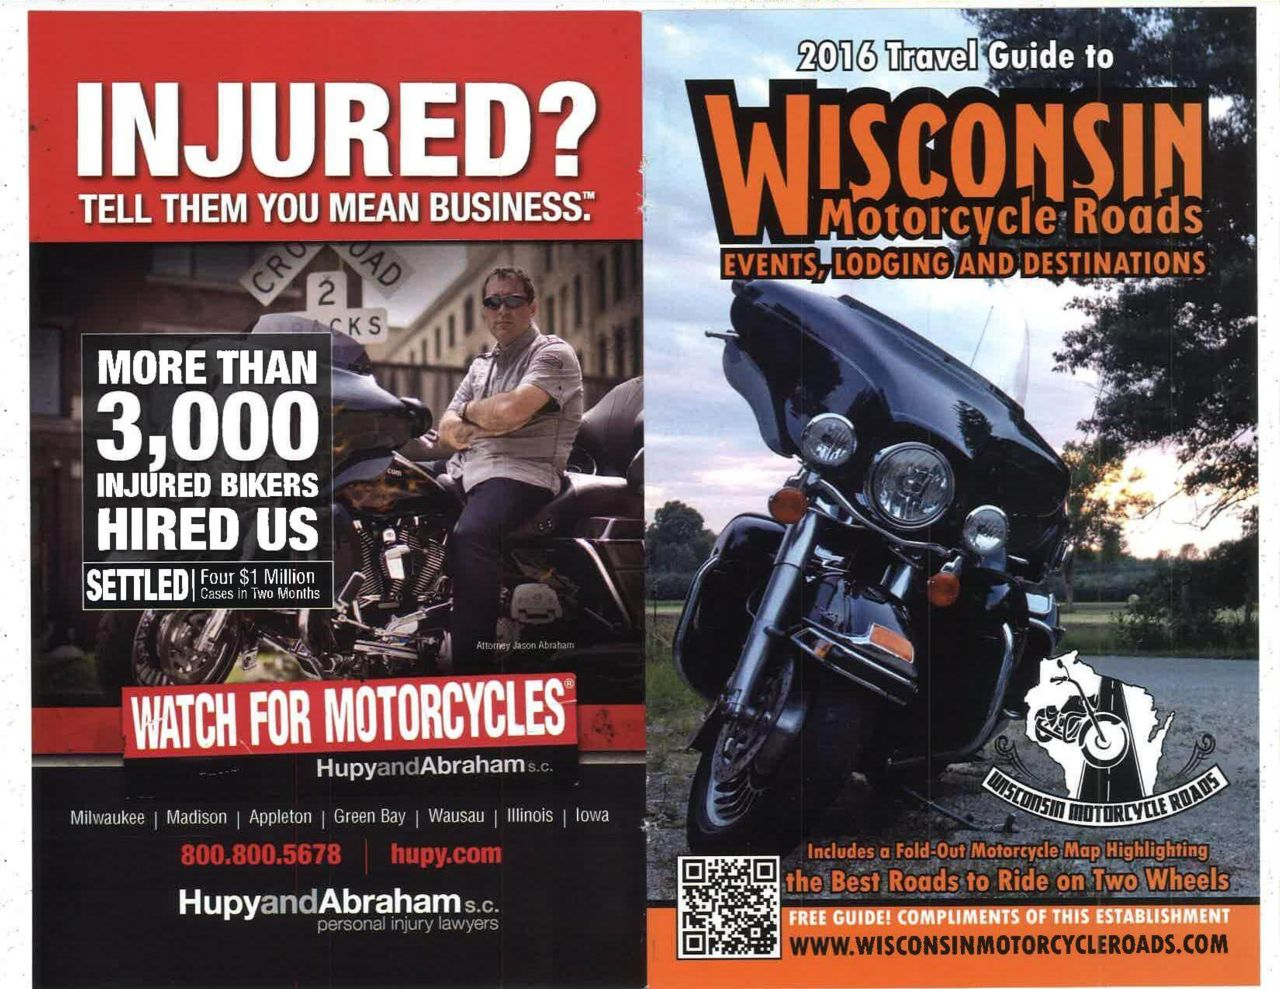 wisconsin motorcycle roads thanks hupy and abraham